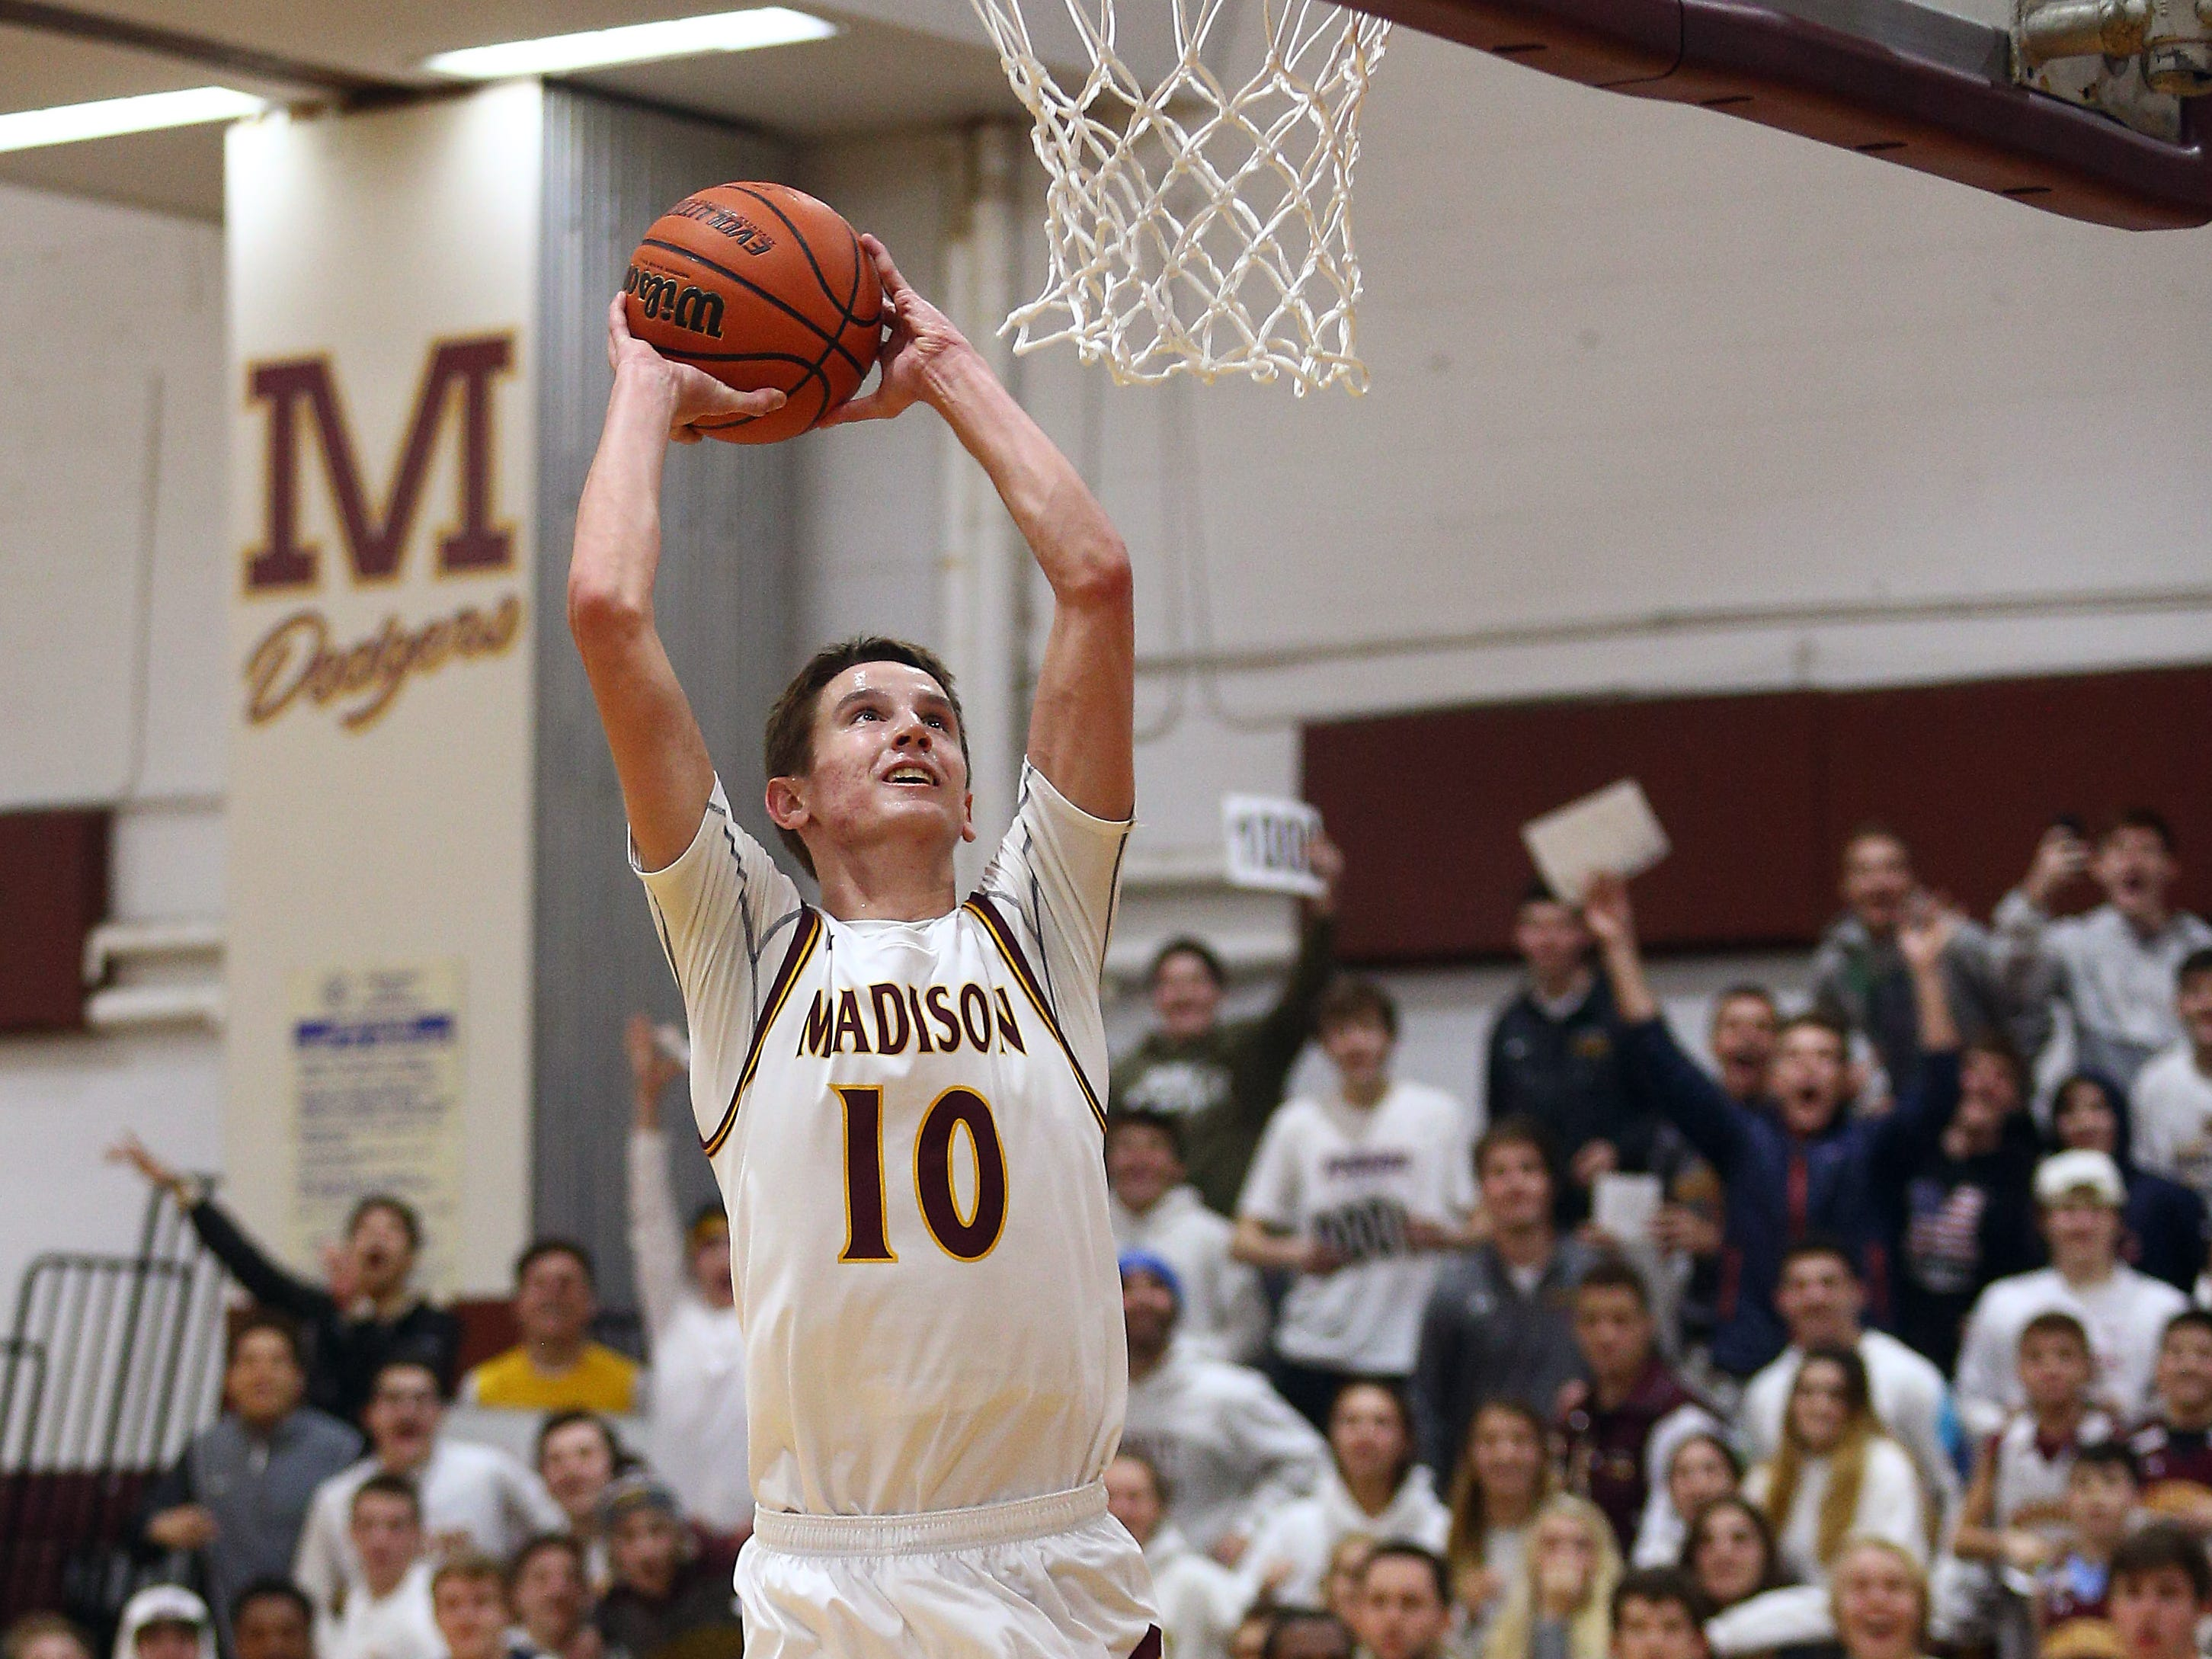 Madison's Andy Christos goes to the hoop for a dunk, his 1000th point during their boys basketball game vs Parsippany. Senior Andy Christos had 22 point surpassing his 1,000th career point. December 18, 2018, Madison, NJ